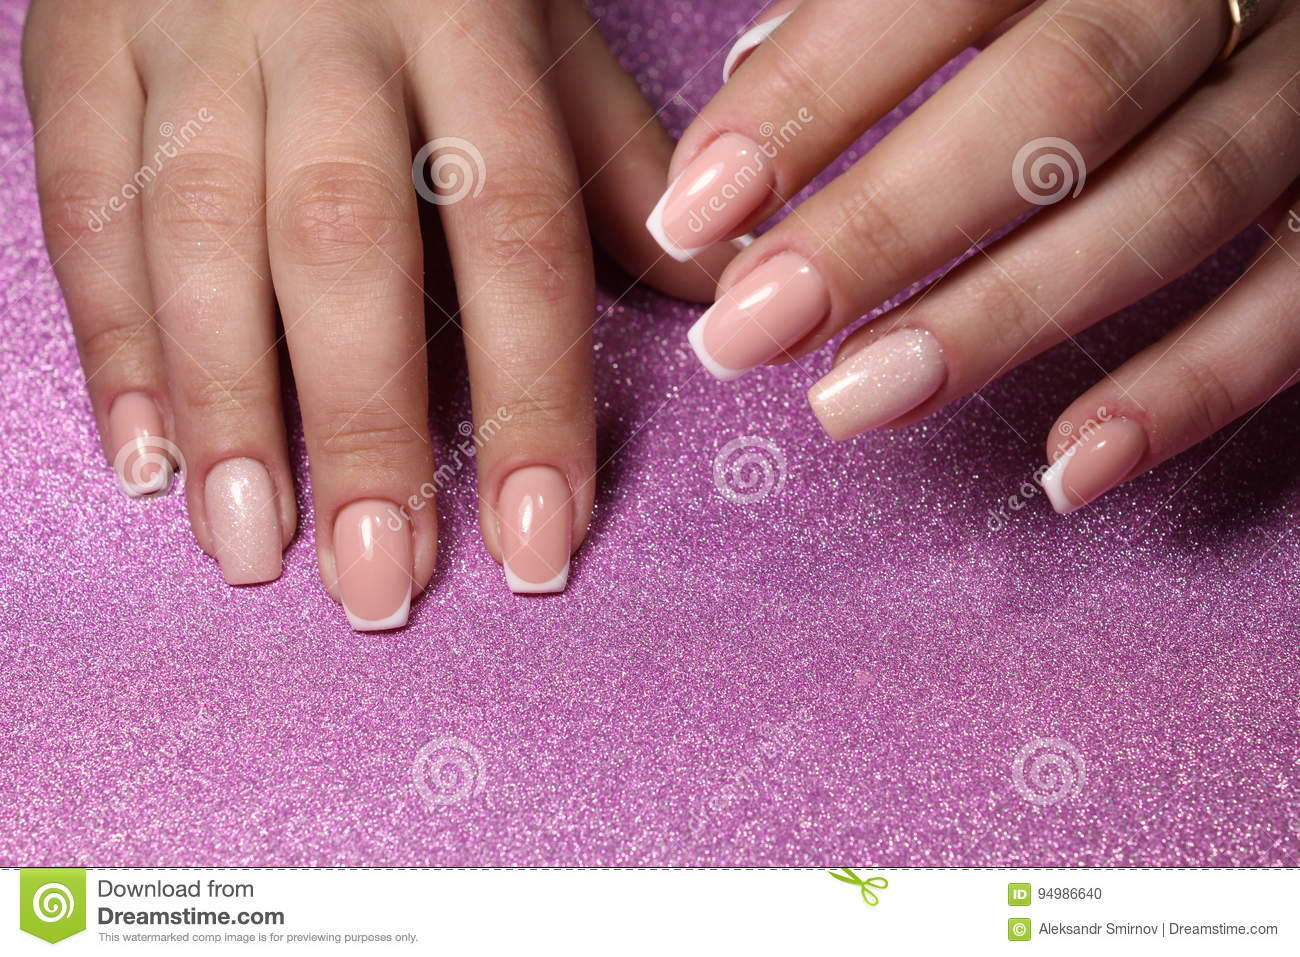 Pink Gentle French Manicure Design Stock Photo - Image of background ...